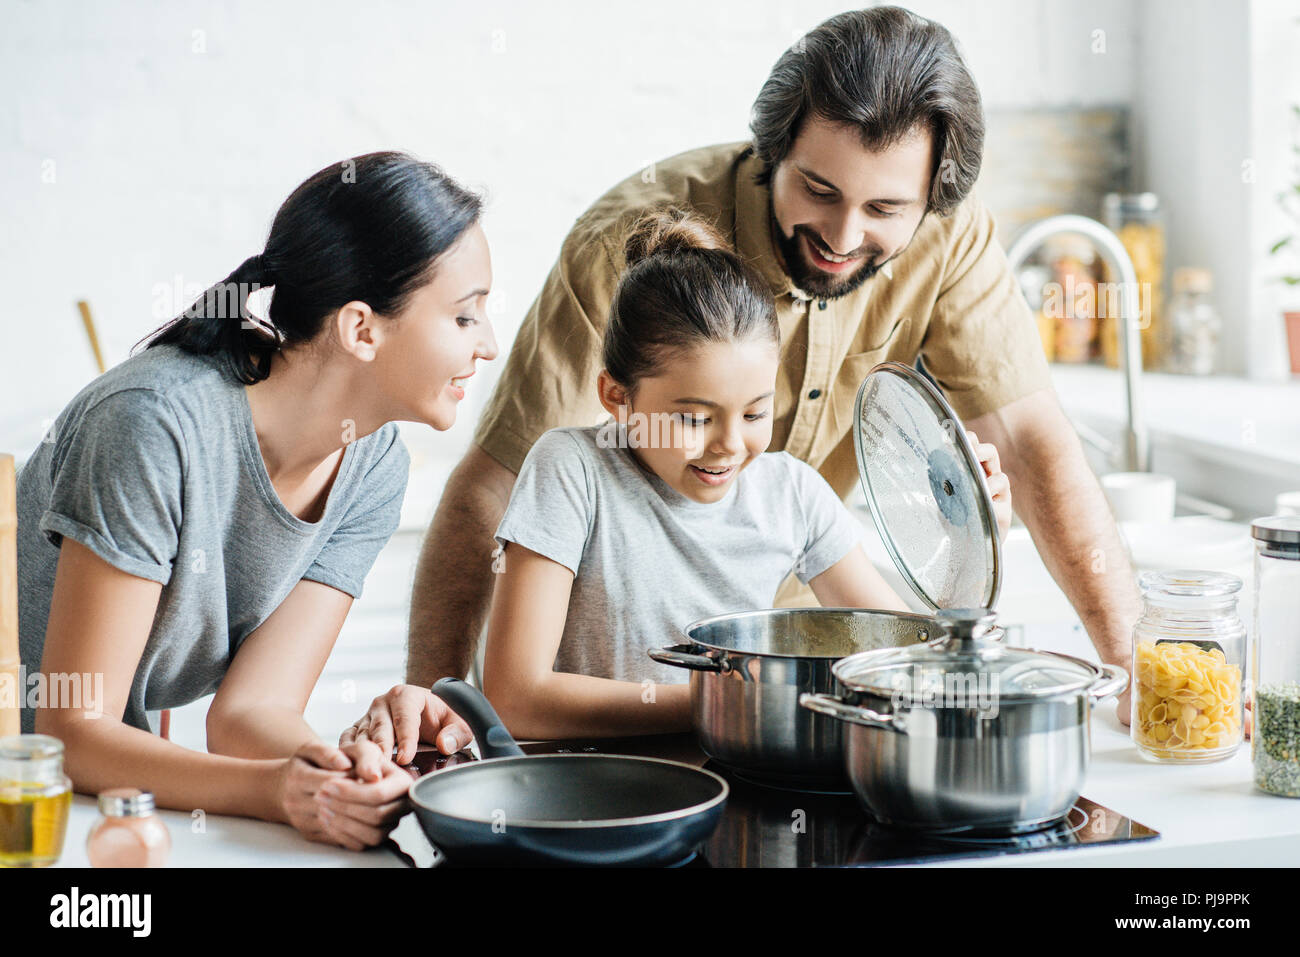 smiling young family cooking together at kitchen - Stock Image